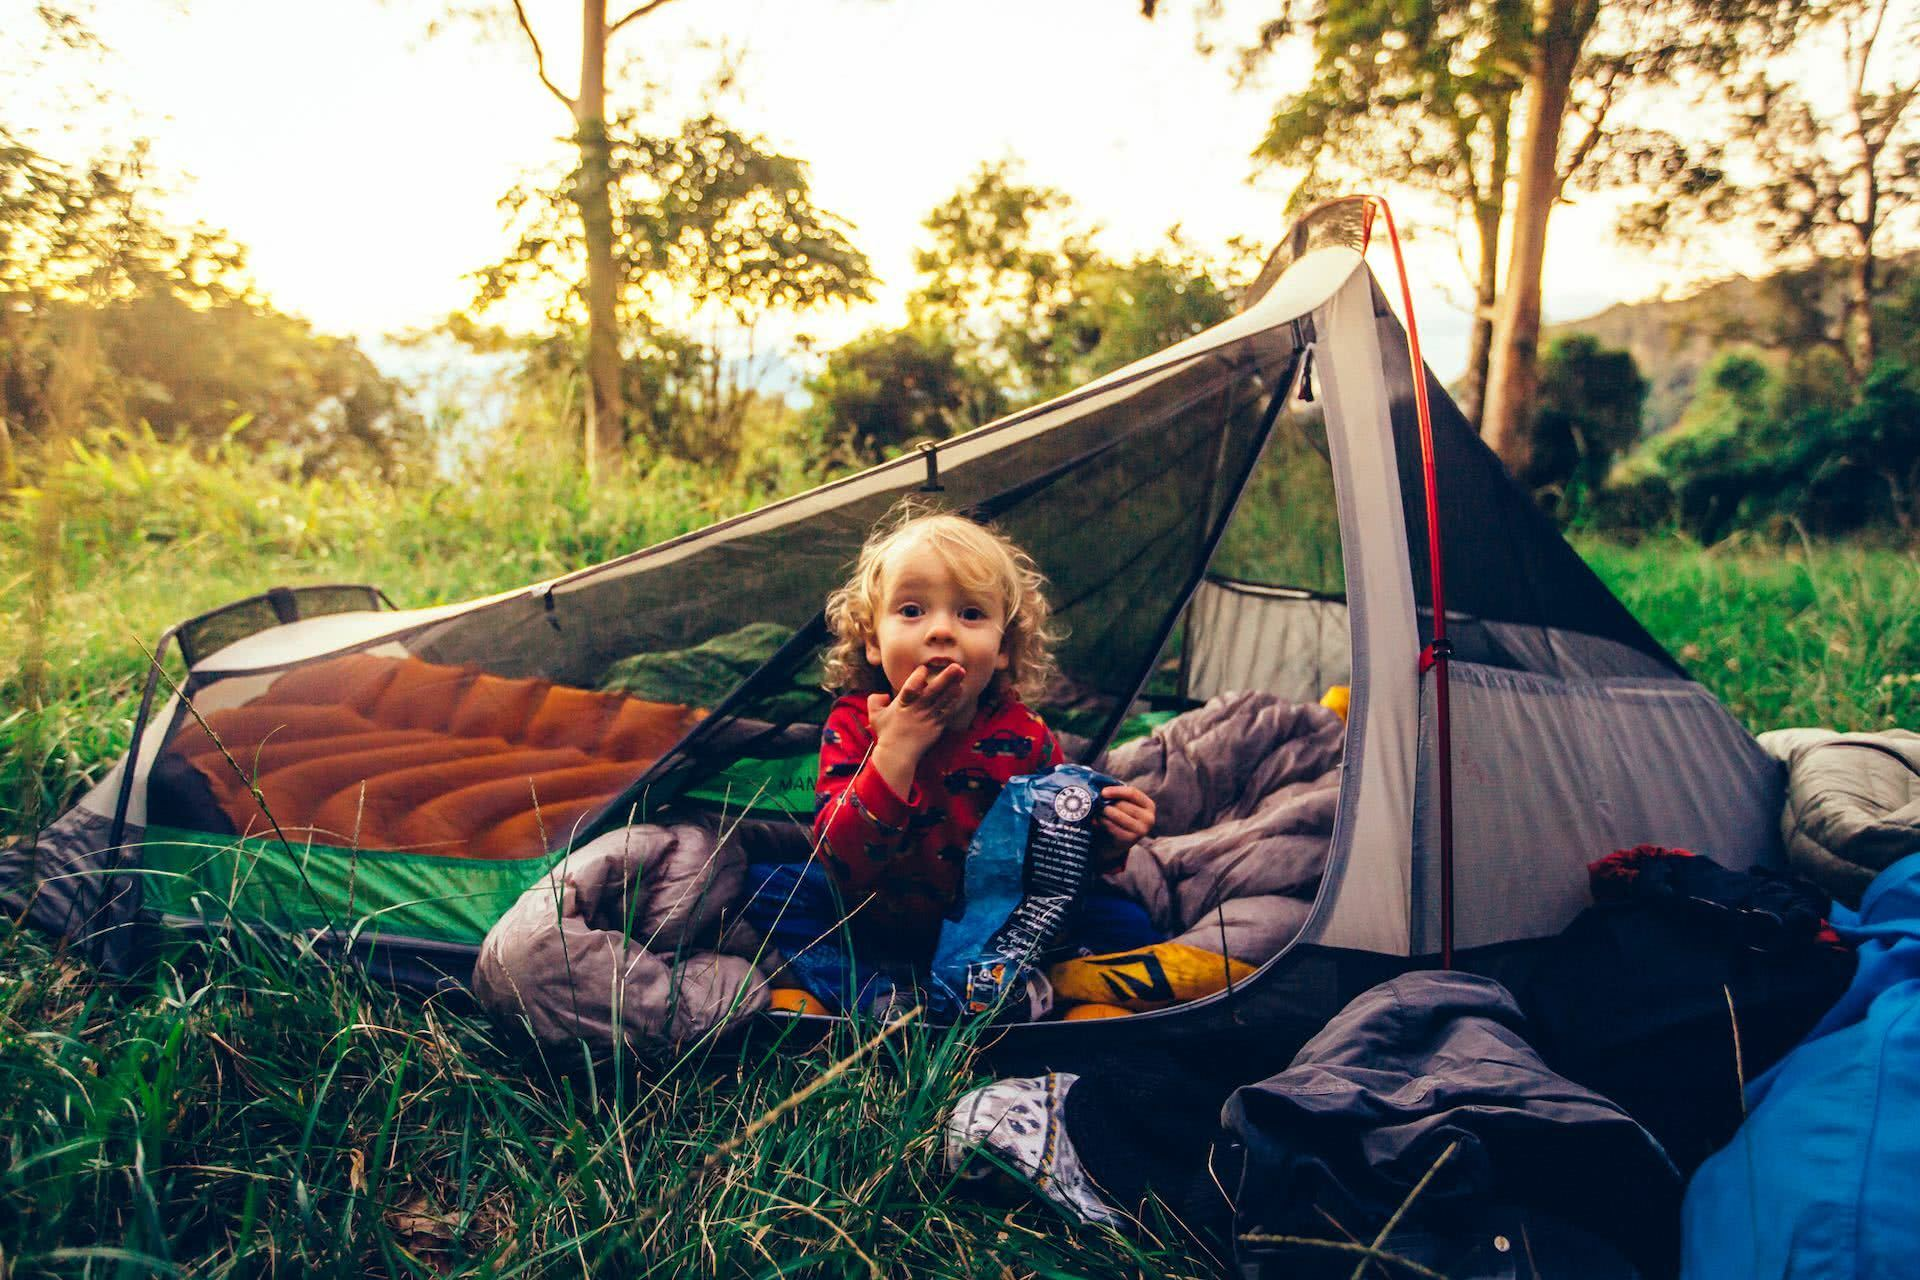 My First Overnight Hike With My Son, Henry Brydon, Black Wolf, tent, kid, camping, sleeping bag, smile, happy